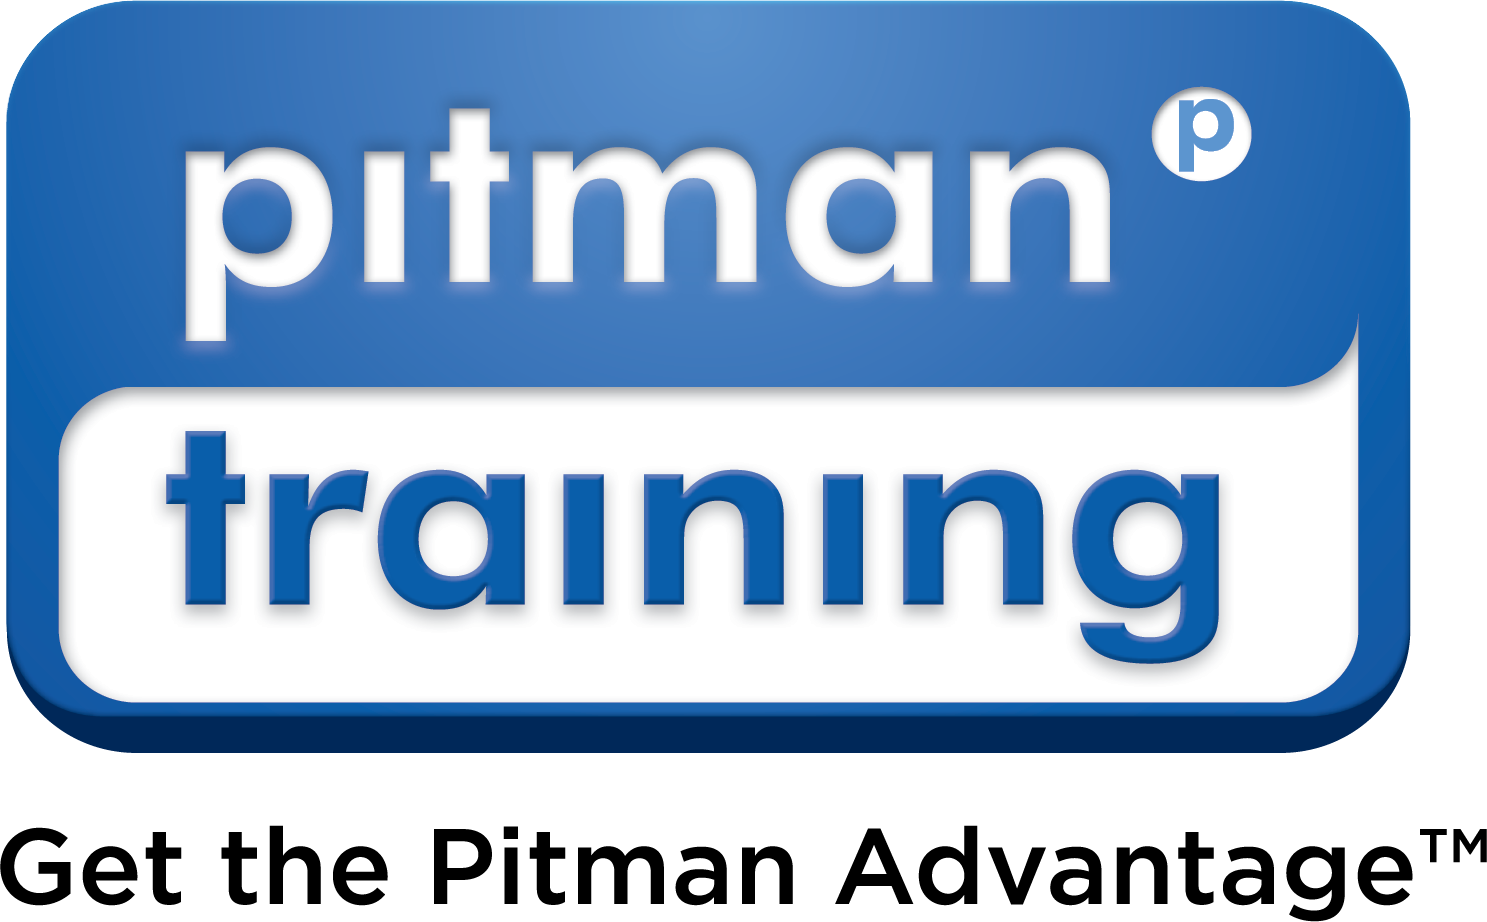 http://www.pitman-training.es/barcelona/